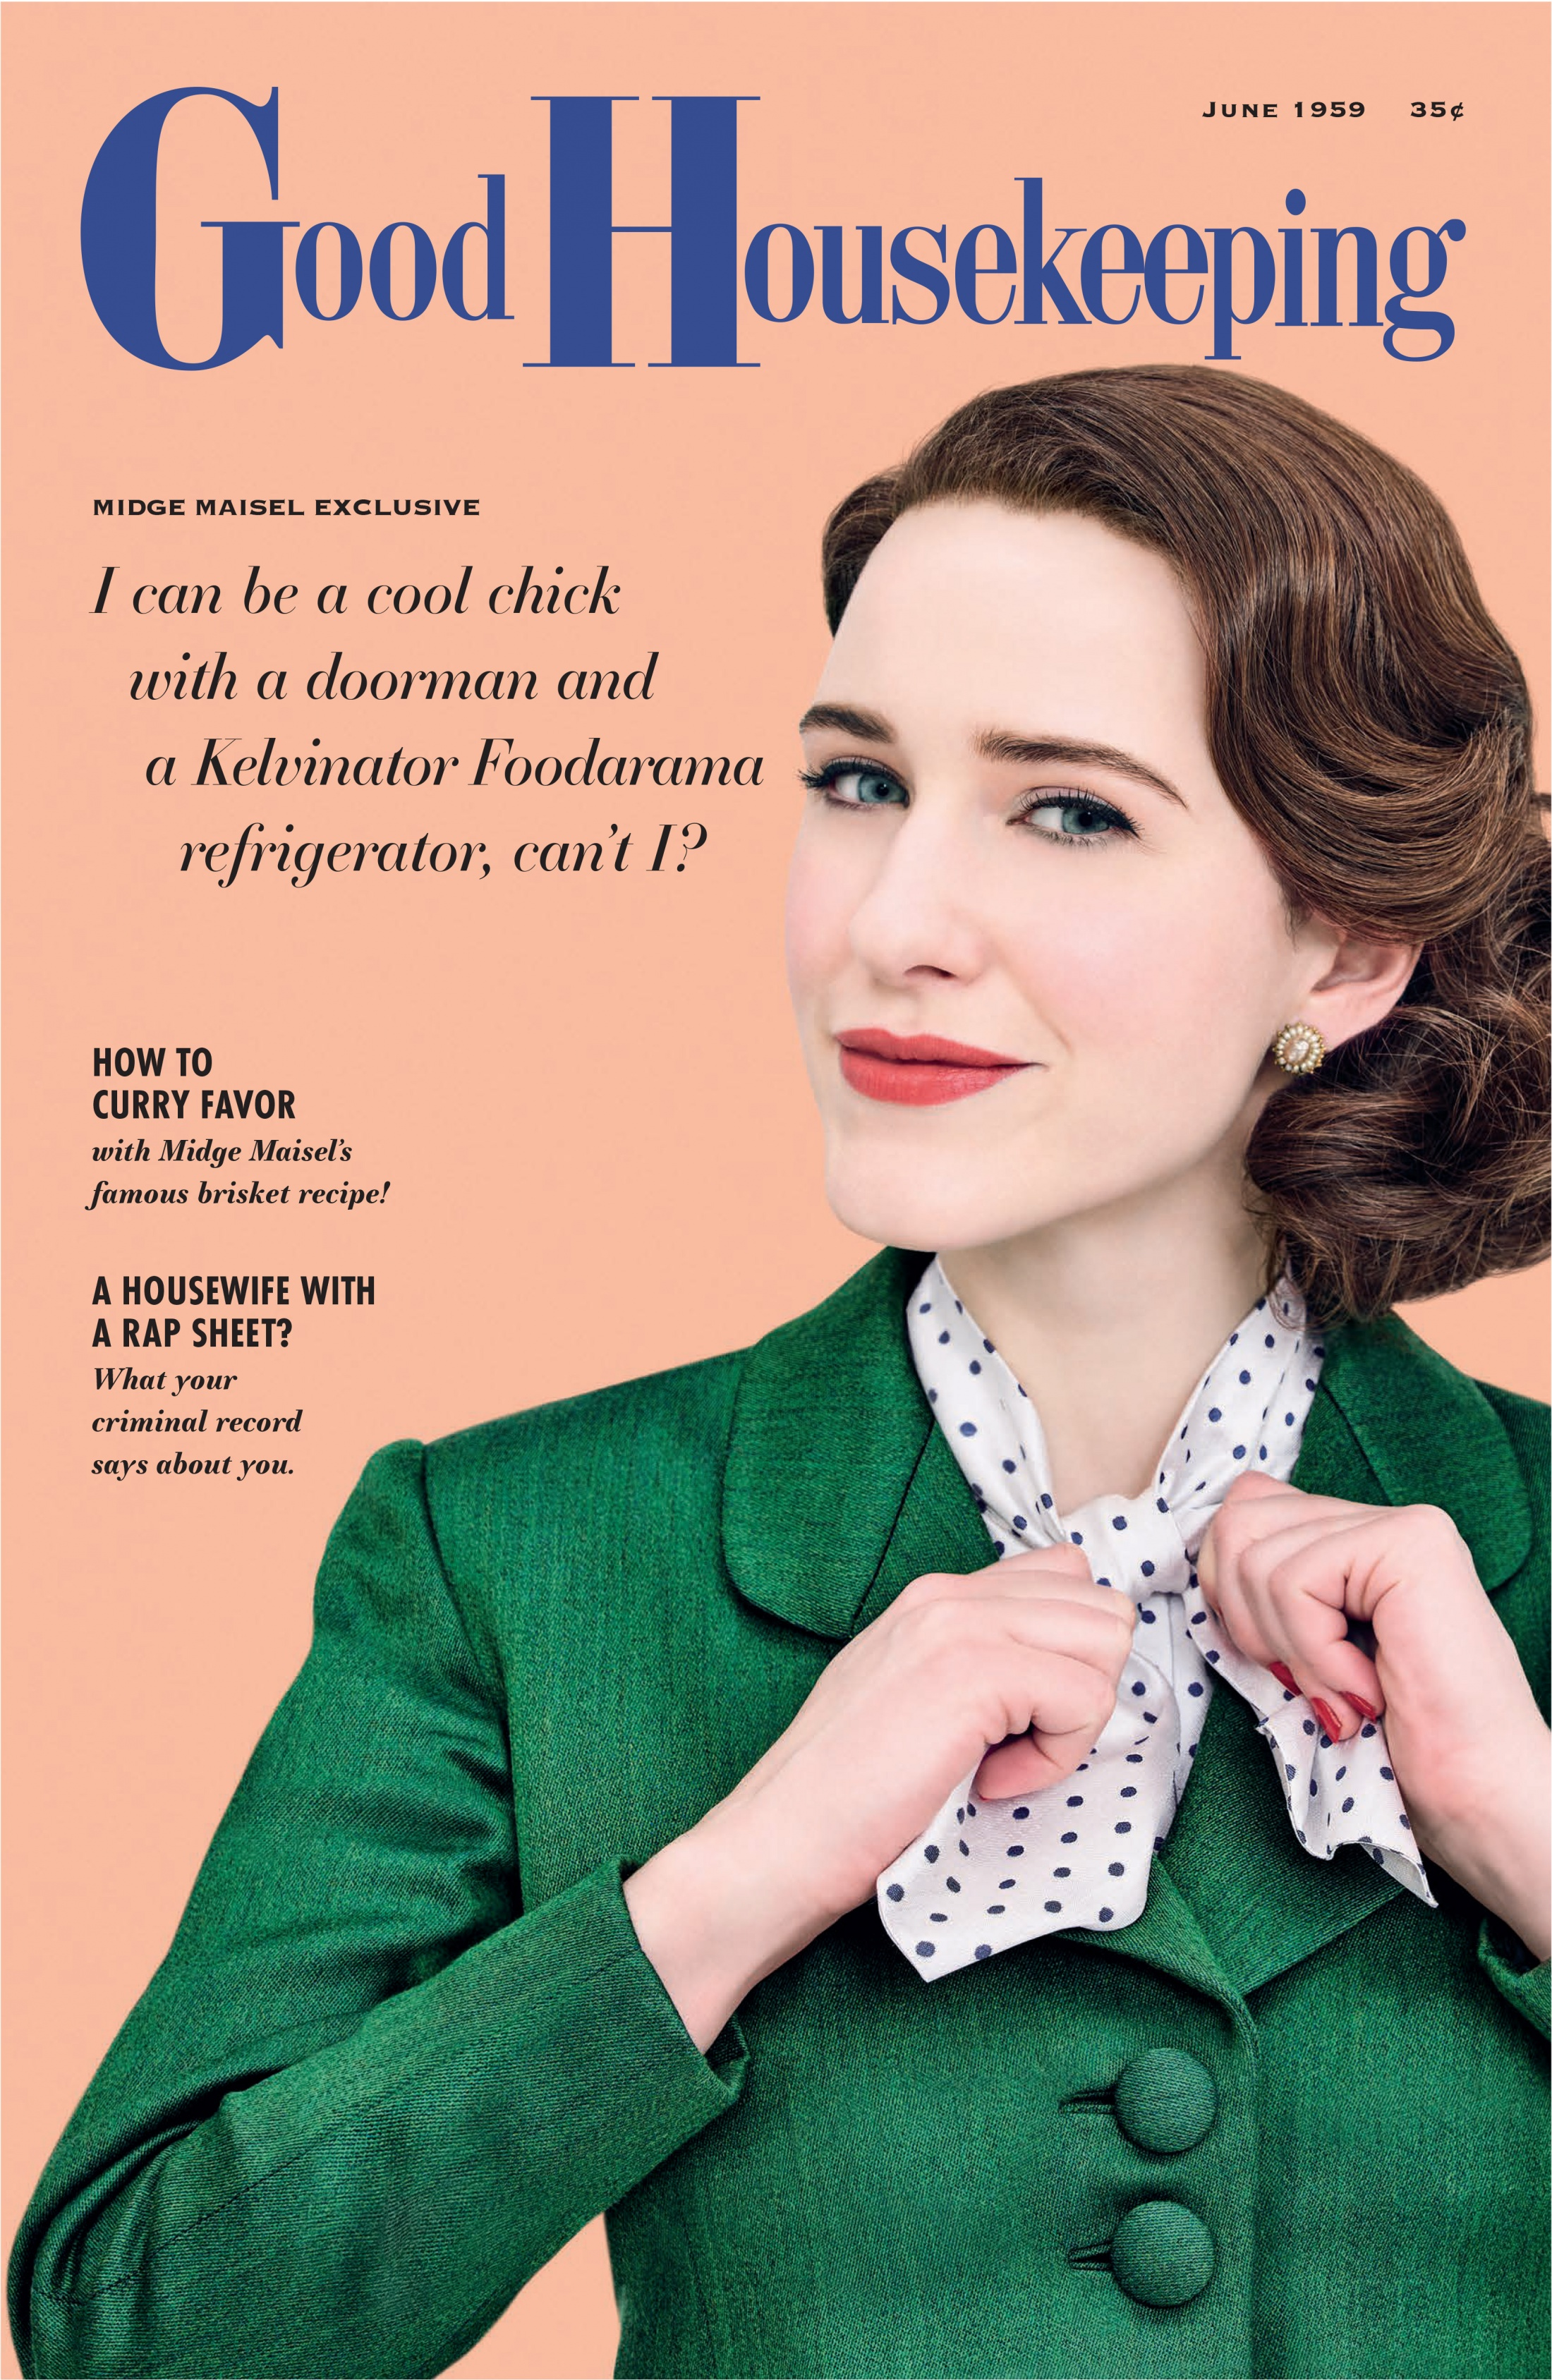 Thumbnail for The Marvelous Mrs. Maisel Magazine Cover Takeover (Good Housekeeping)